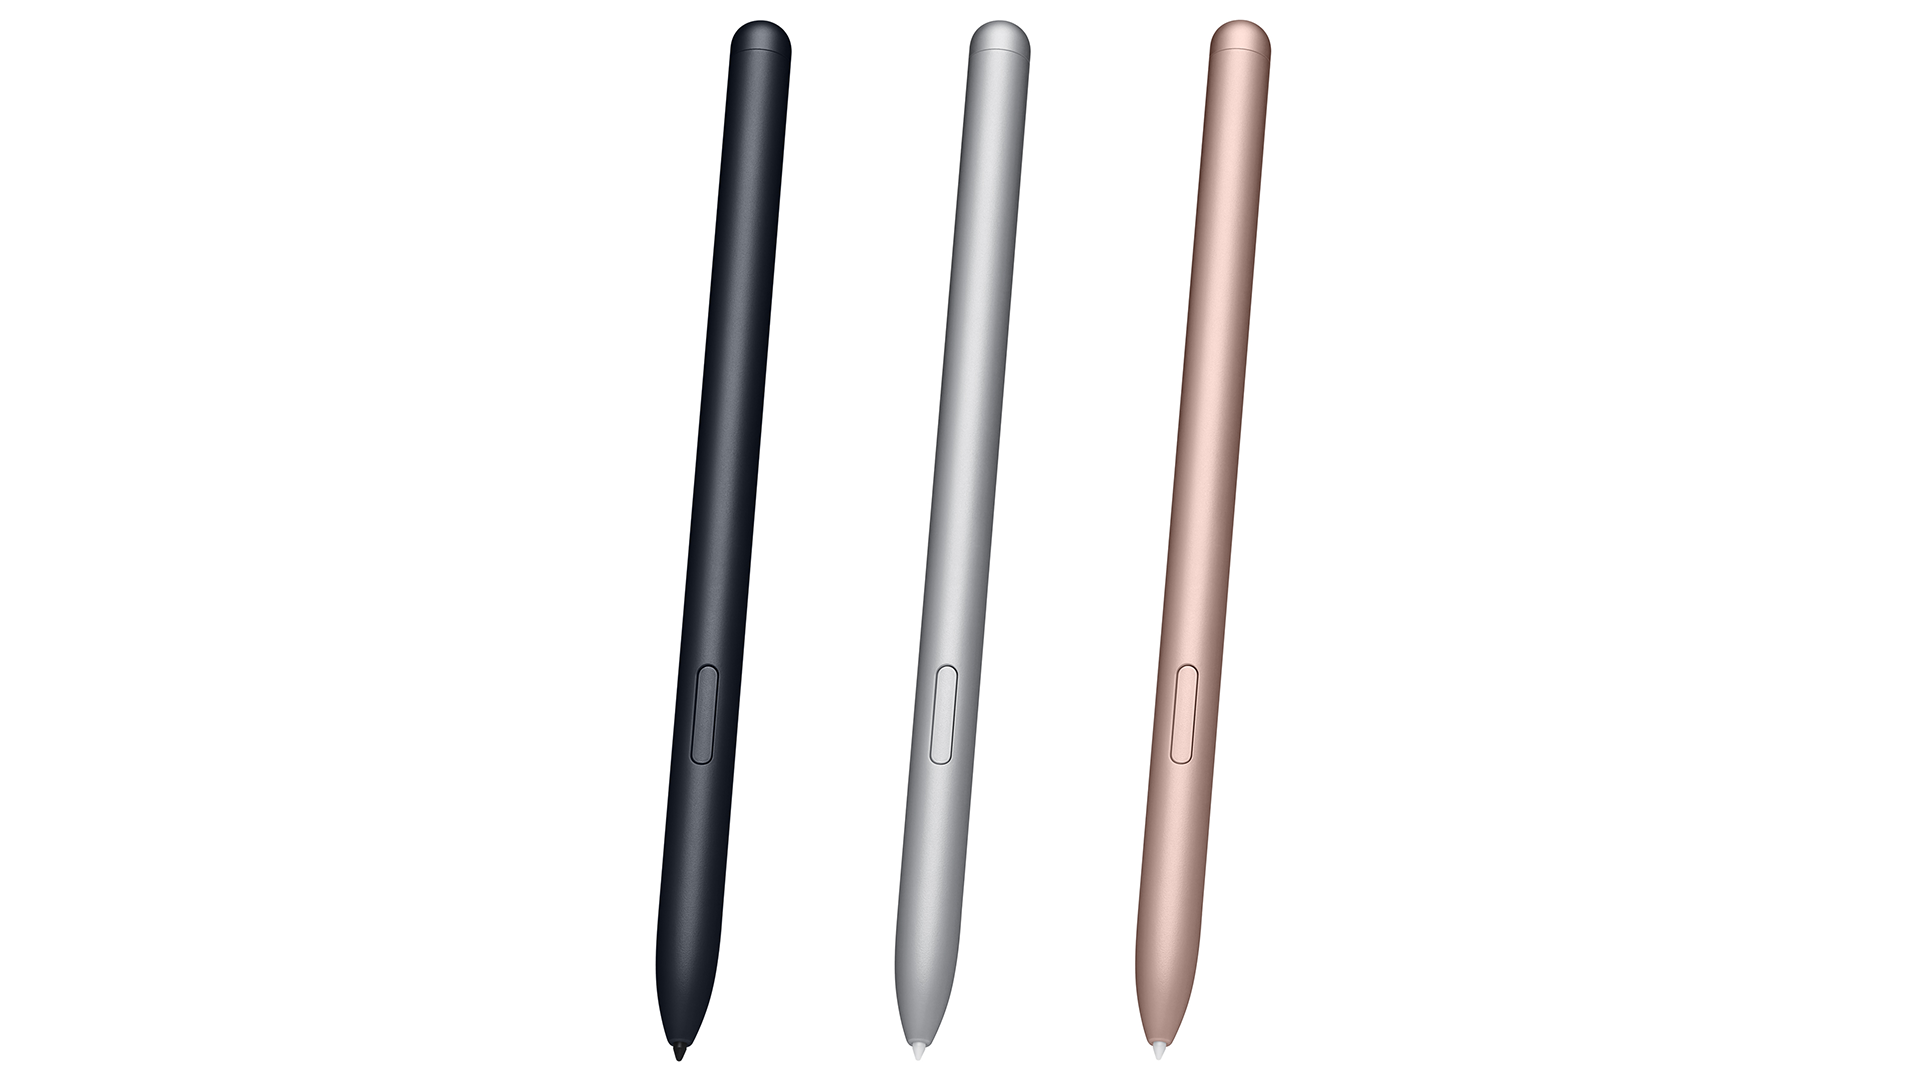 The S Pen in three colors.